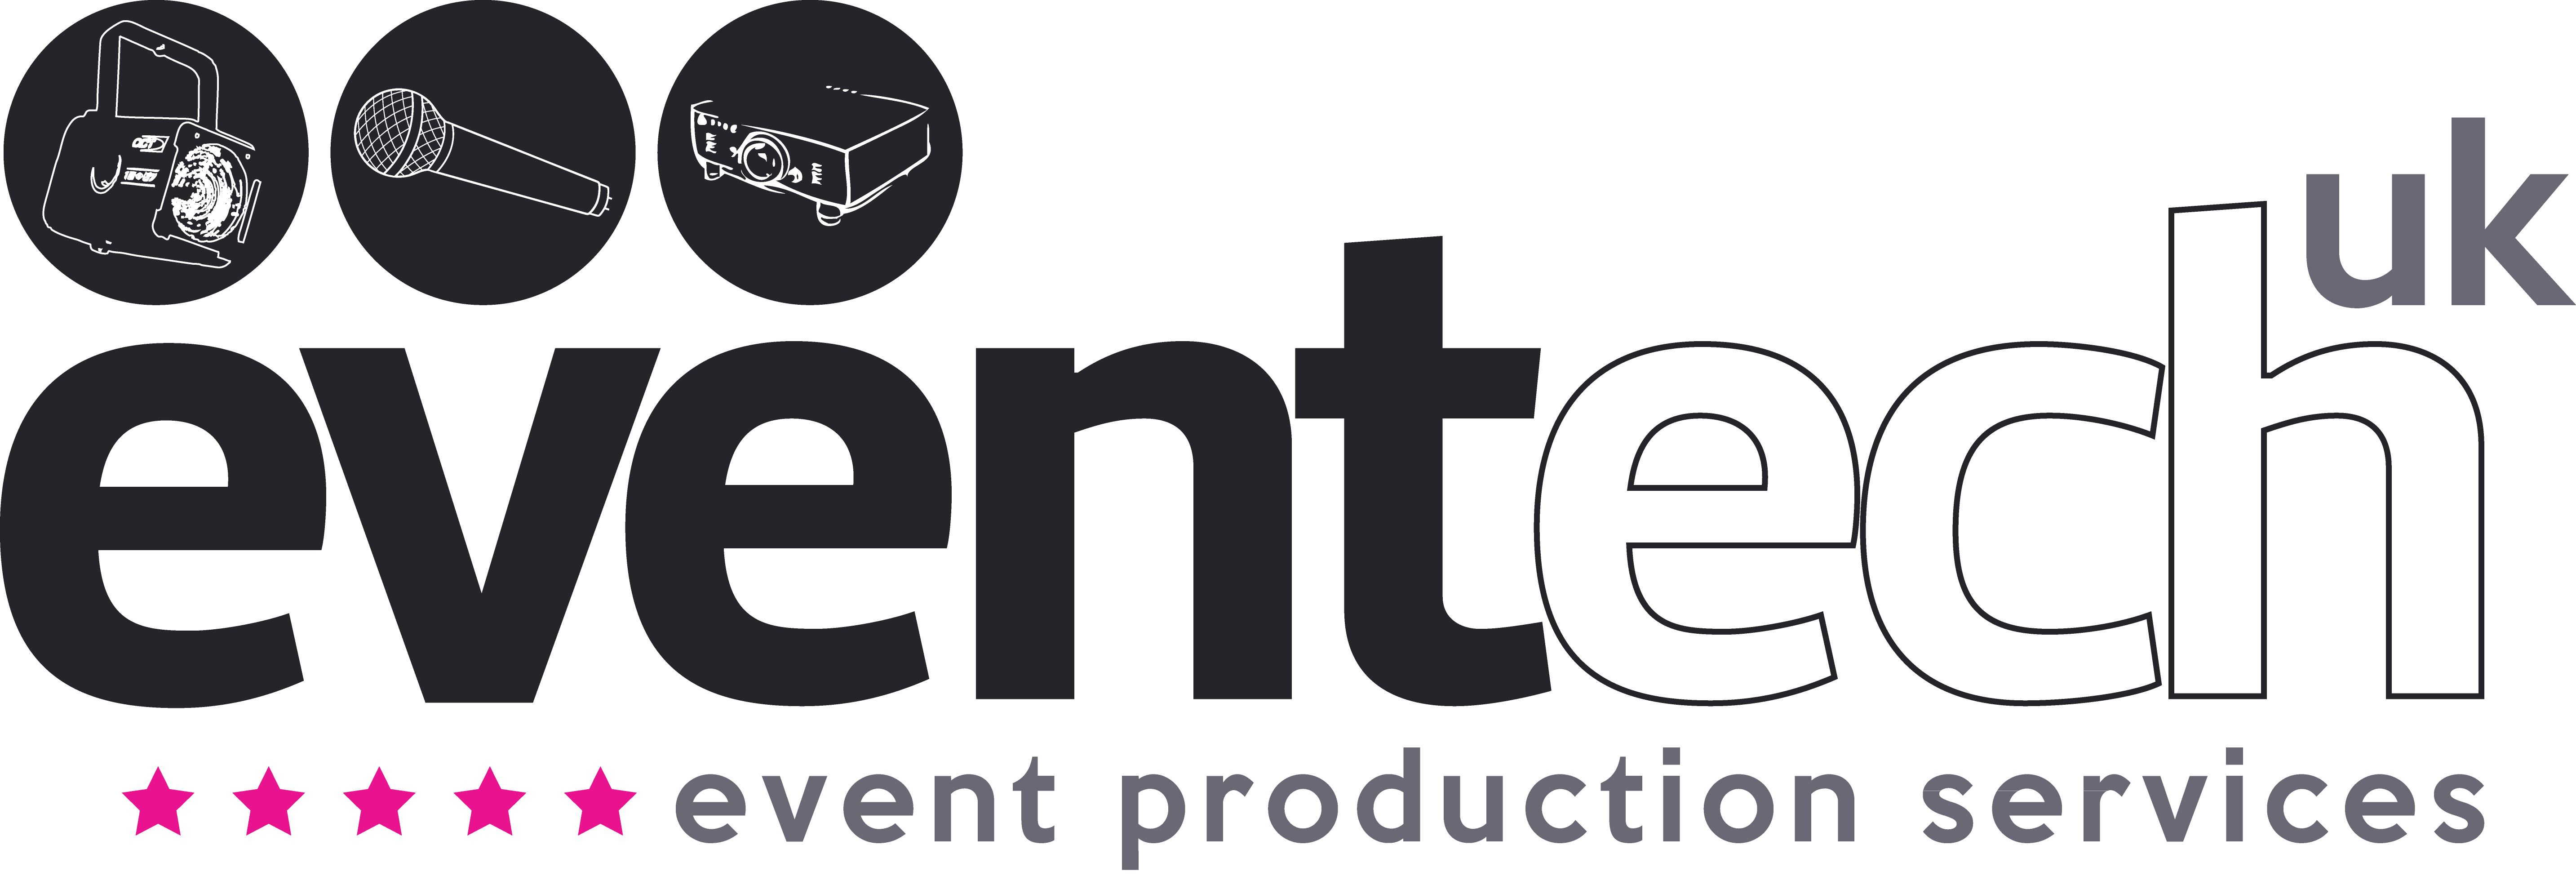 Eventech UK – Event Production Services | Audio Visual Equipment Hire | Lighting Hire | Sound Hire | PA Hire in Darwen, Lancashire